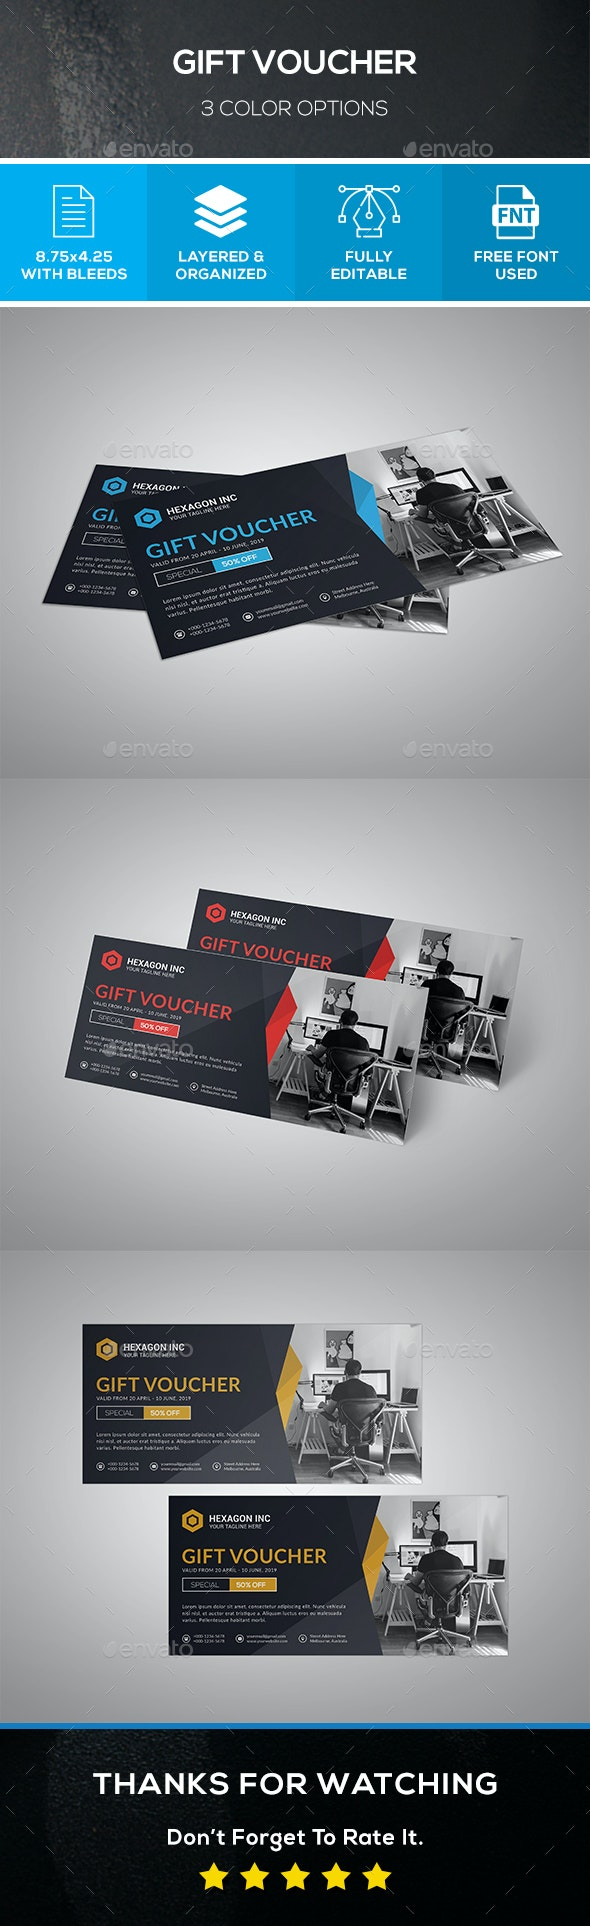 Office Gift Voucher - Cards & Invites Print Templates